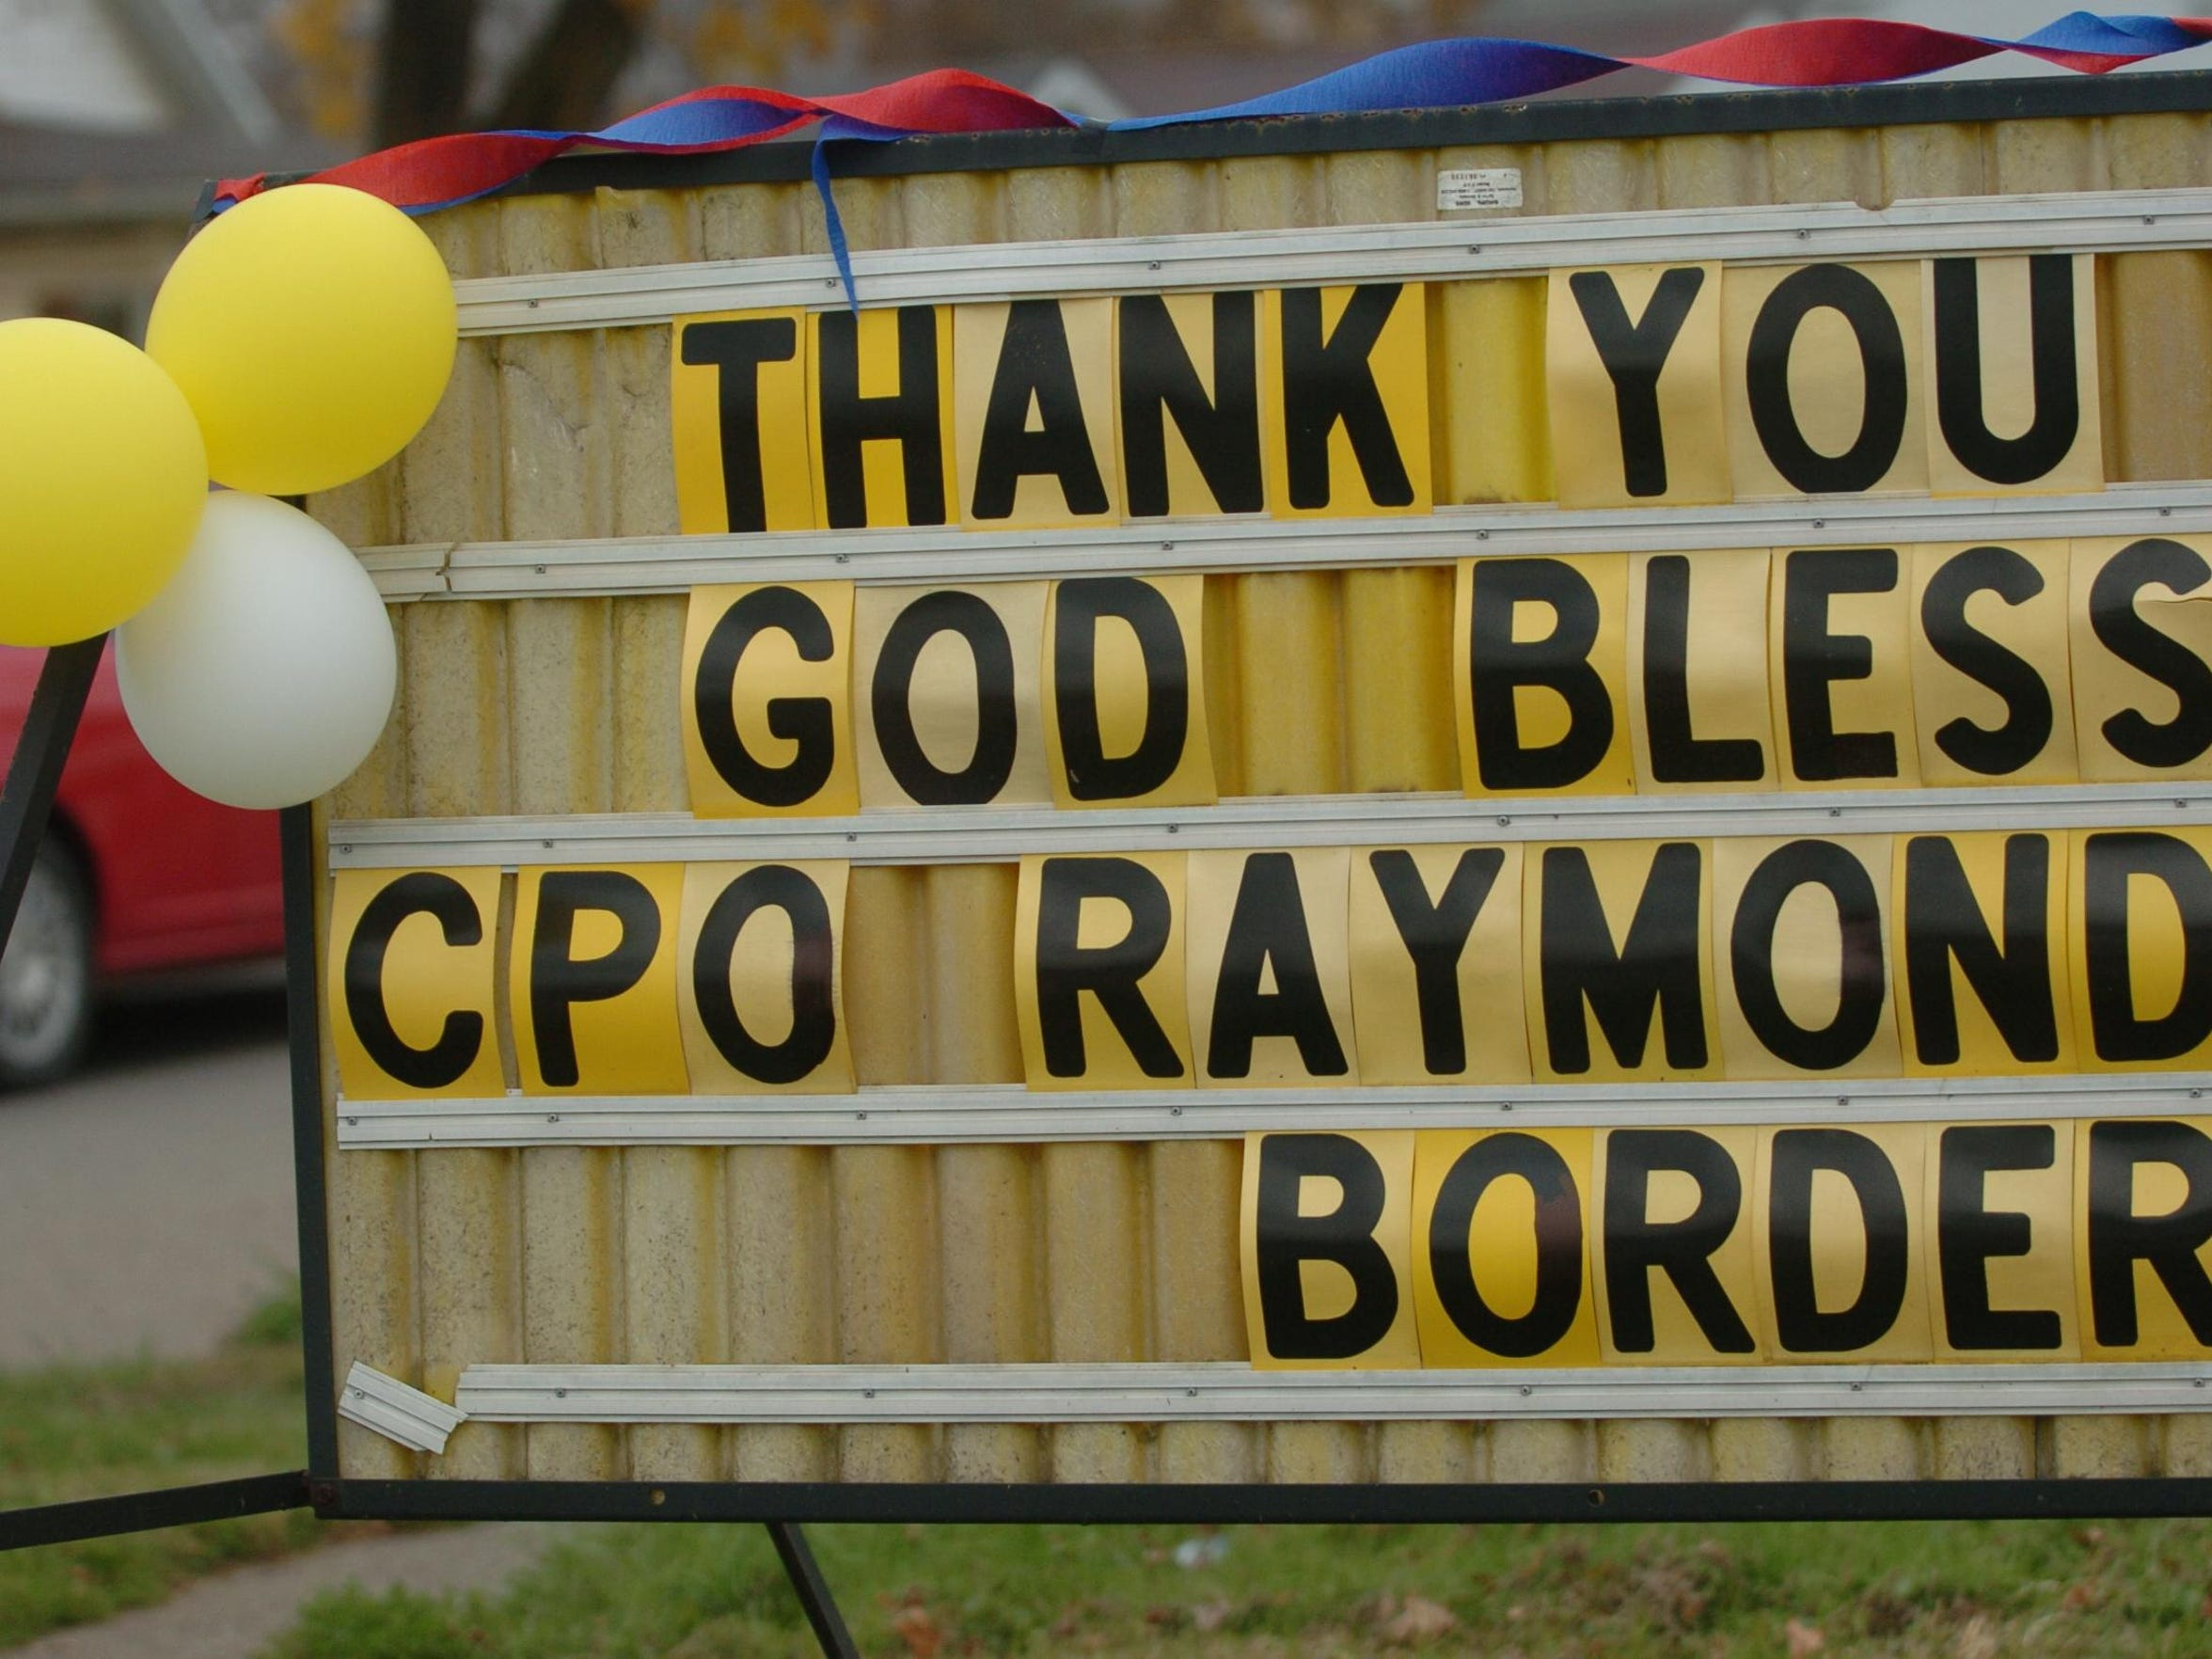 Businesses throughout the county showed support for the family of U.S. Navy Builder Chief Petty Officer Raymond Border with signs and flags.